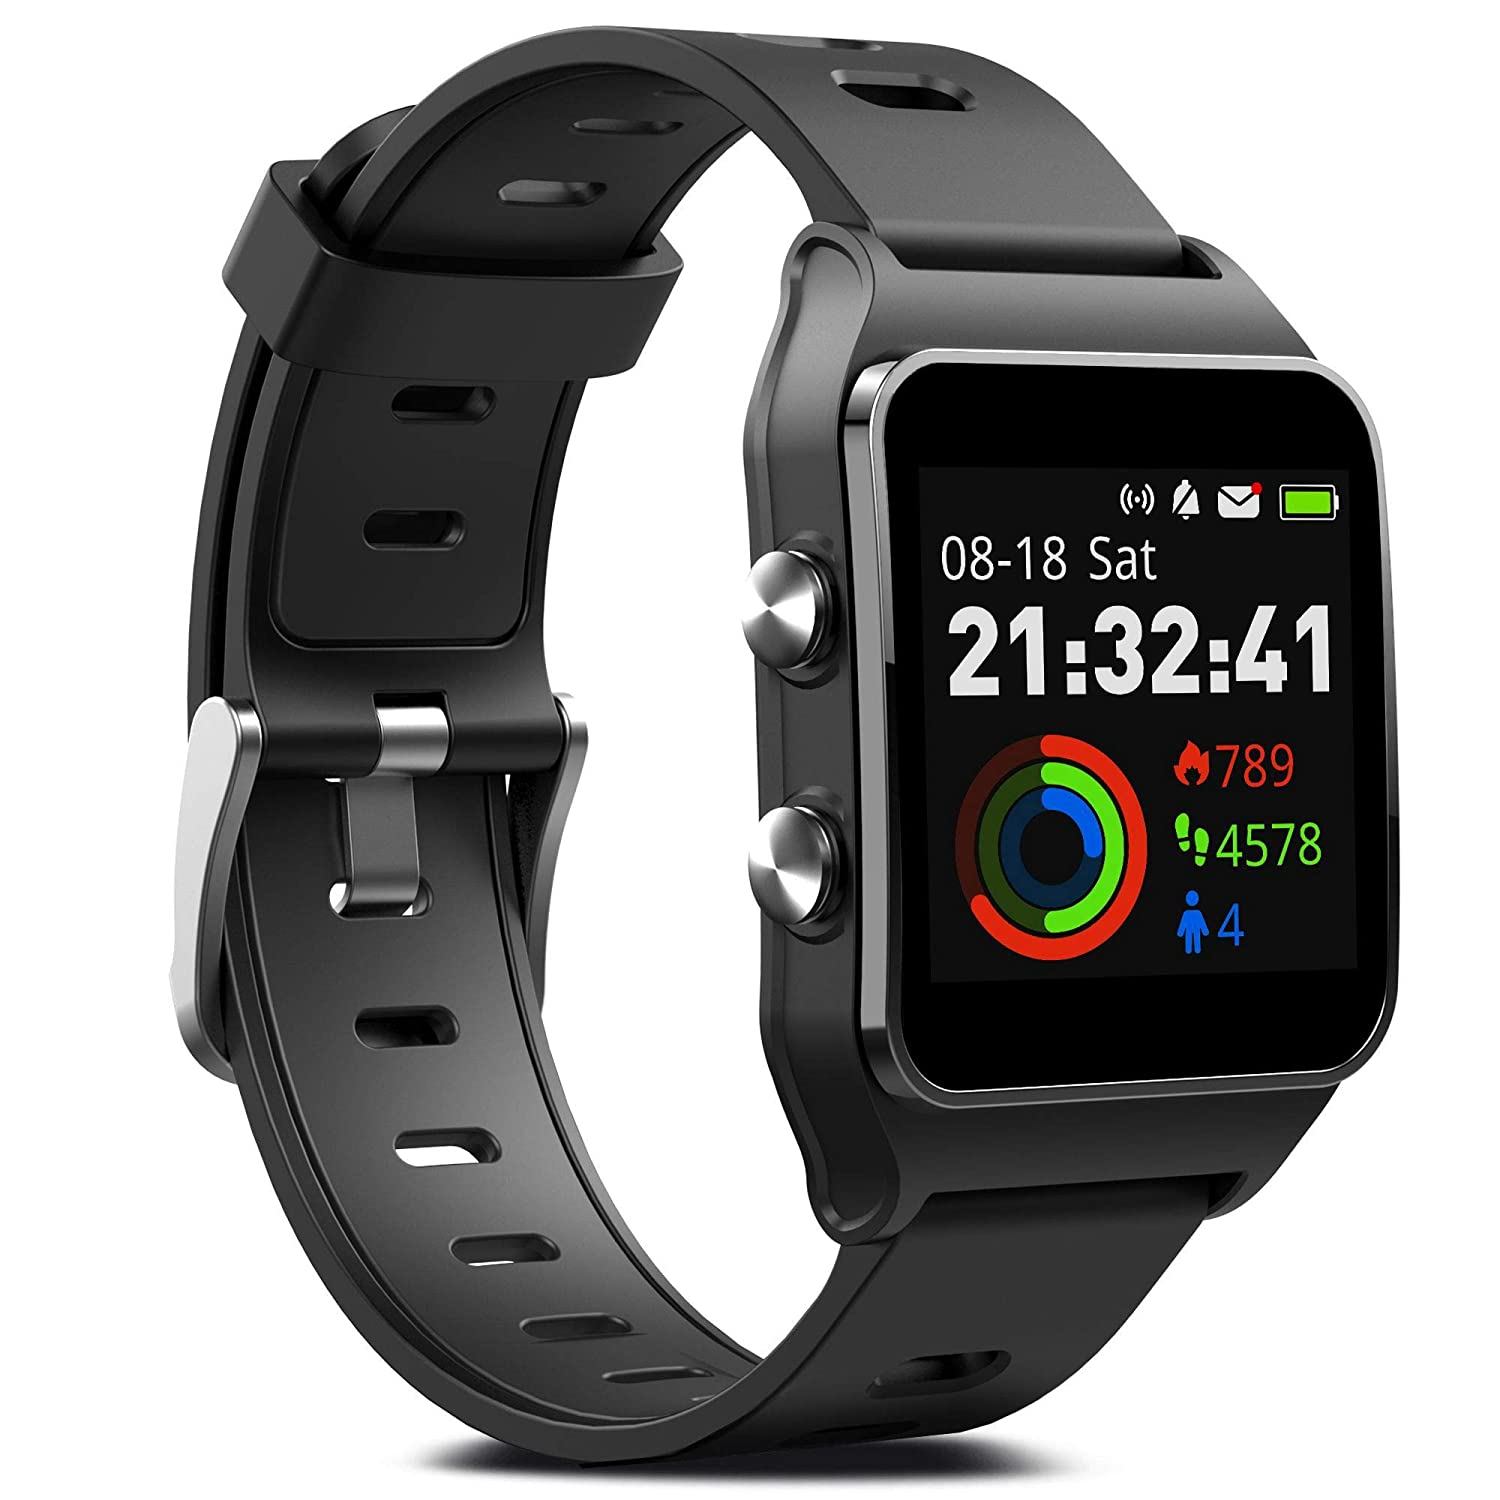 FITVII GPS Smartwatch with 17 Sports Mode Activity Tracker IP68 Waterproof Swimming Touch Screen Watches, Heart Rate Monitor Sleep Trackers with ...